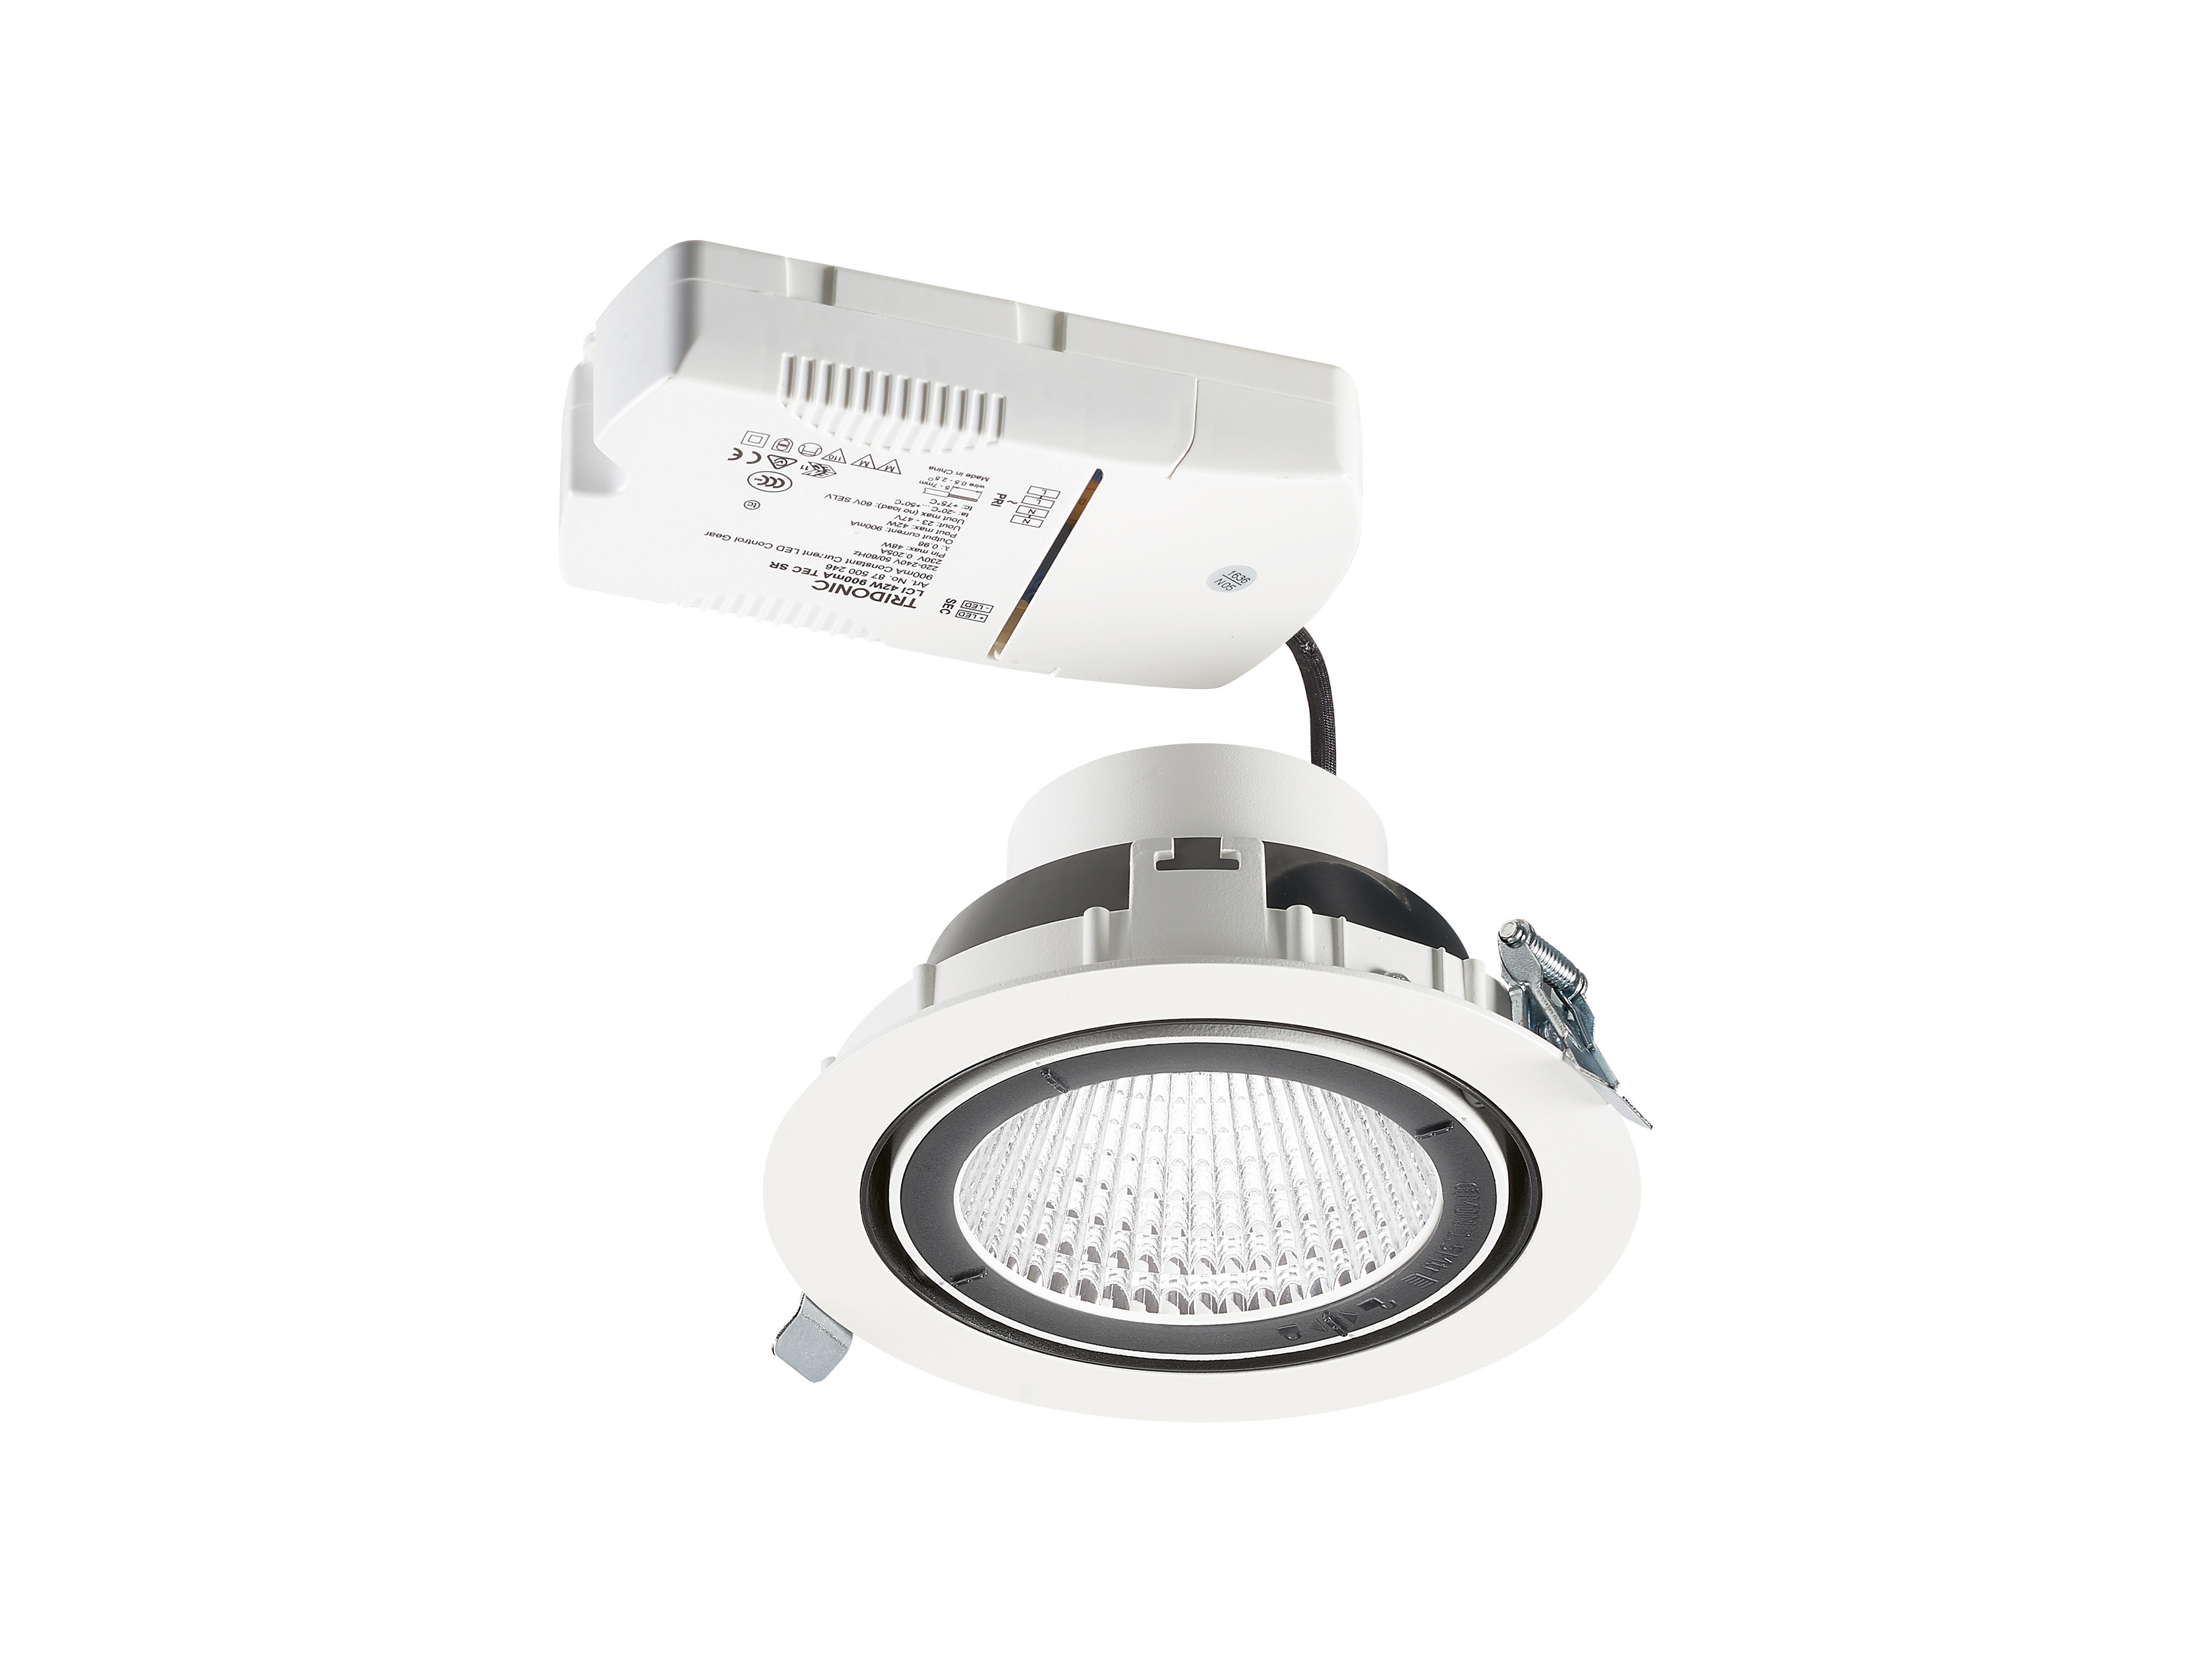 Ocullo Led Round Mono Sylvania Lighting Solutions Track Without Wiring Product Photo For 3032404